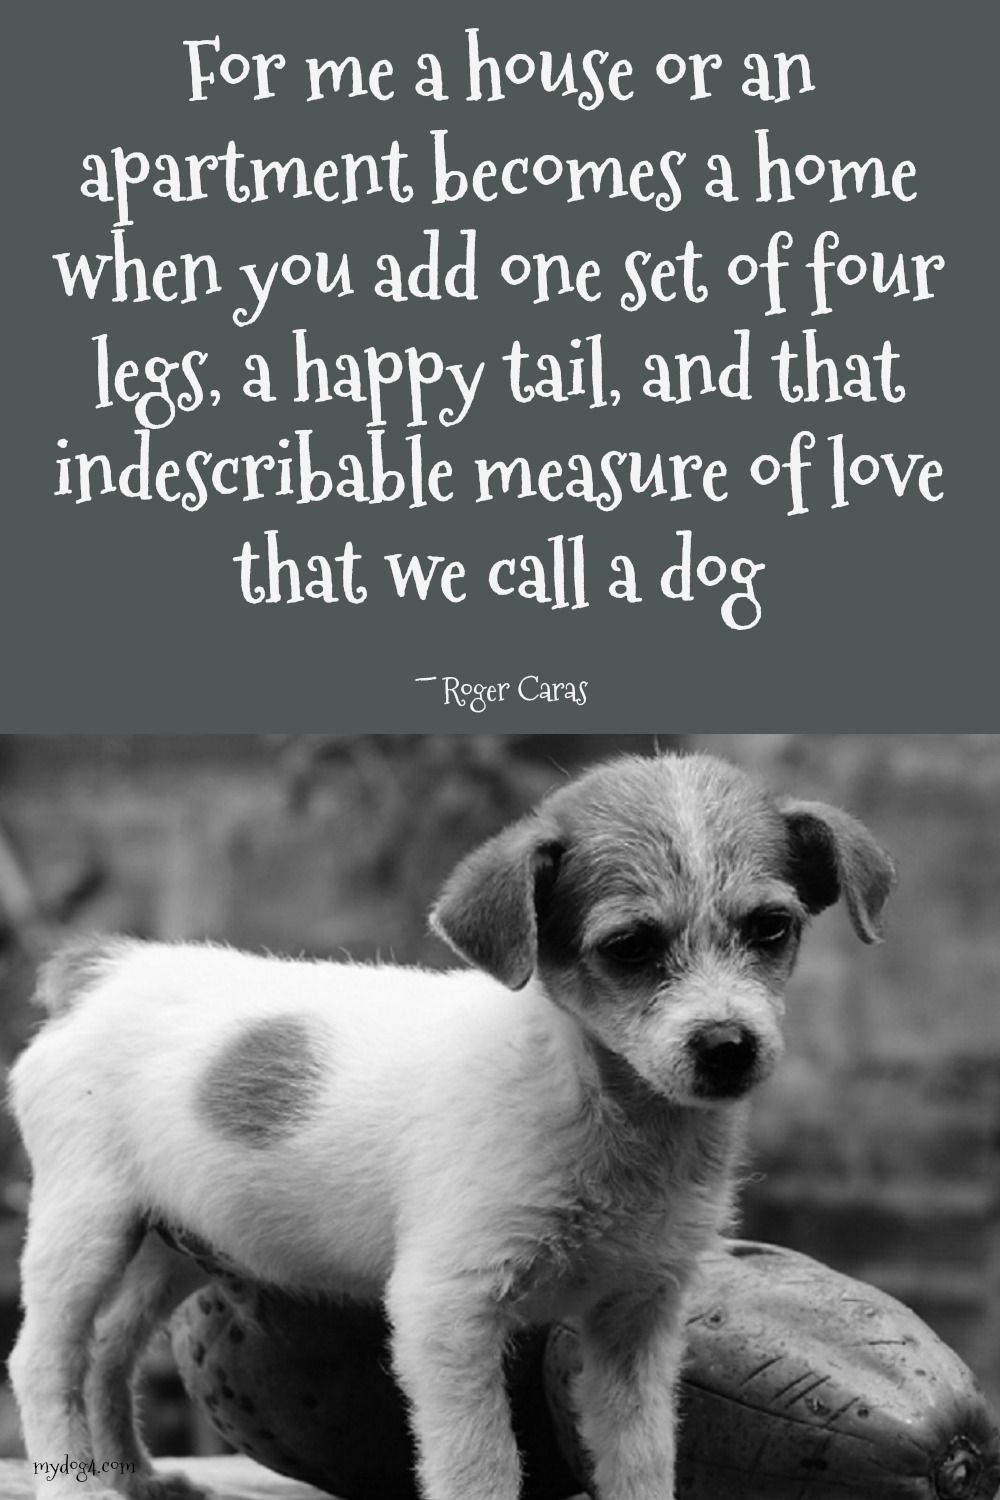 Dog Quotes Love Bestfriends Dog Quotes Dog Quotes Love Dog Quotes Funny